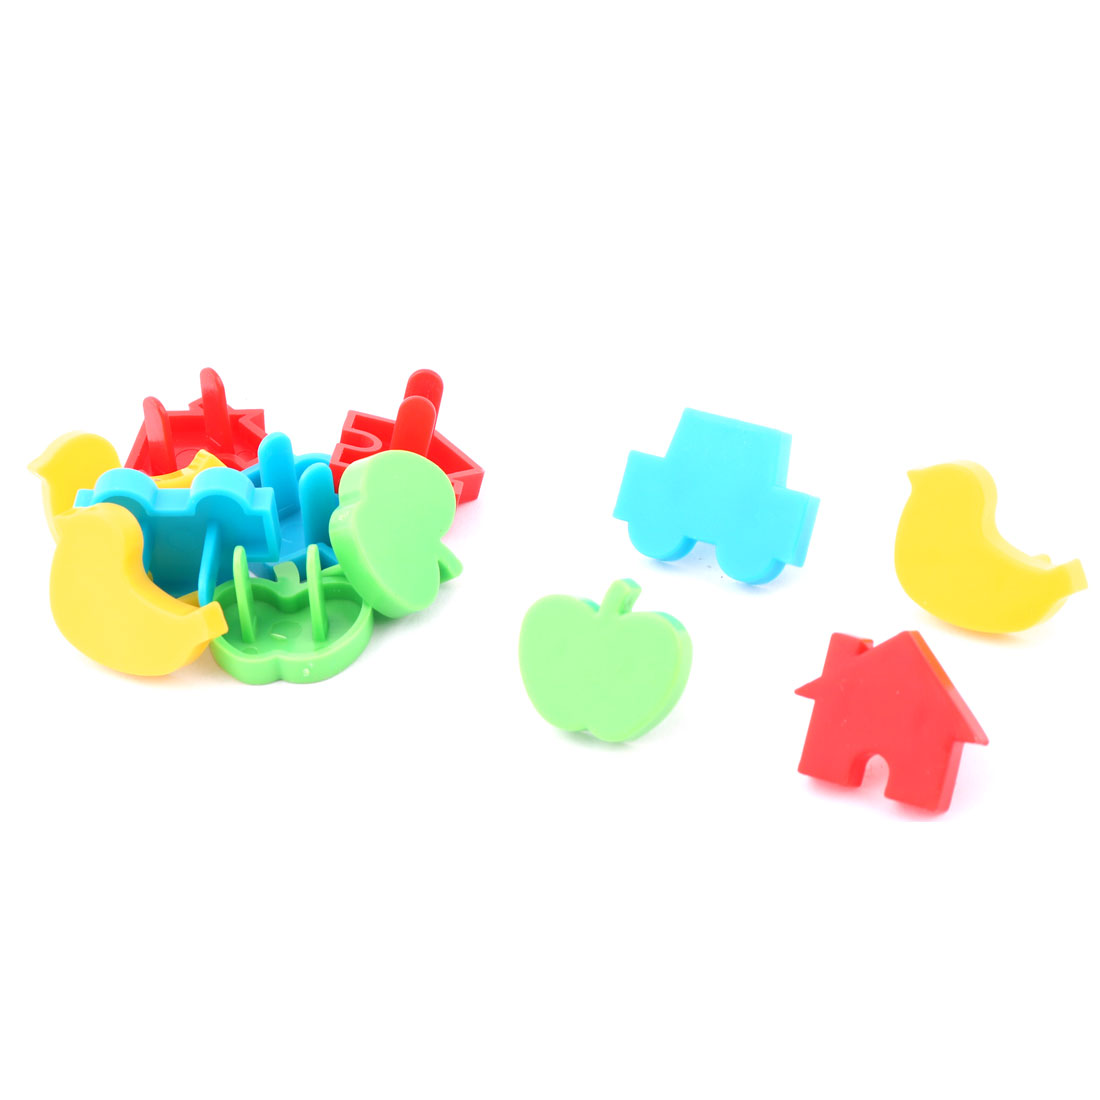 Plastic US Plug Socket Outlet Protector Safety Cover Cap Assorted Color 12 in 1